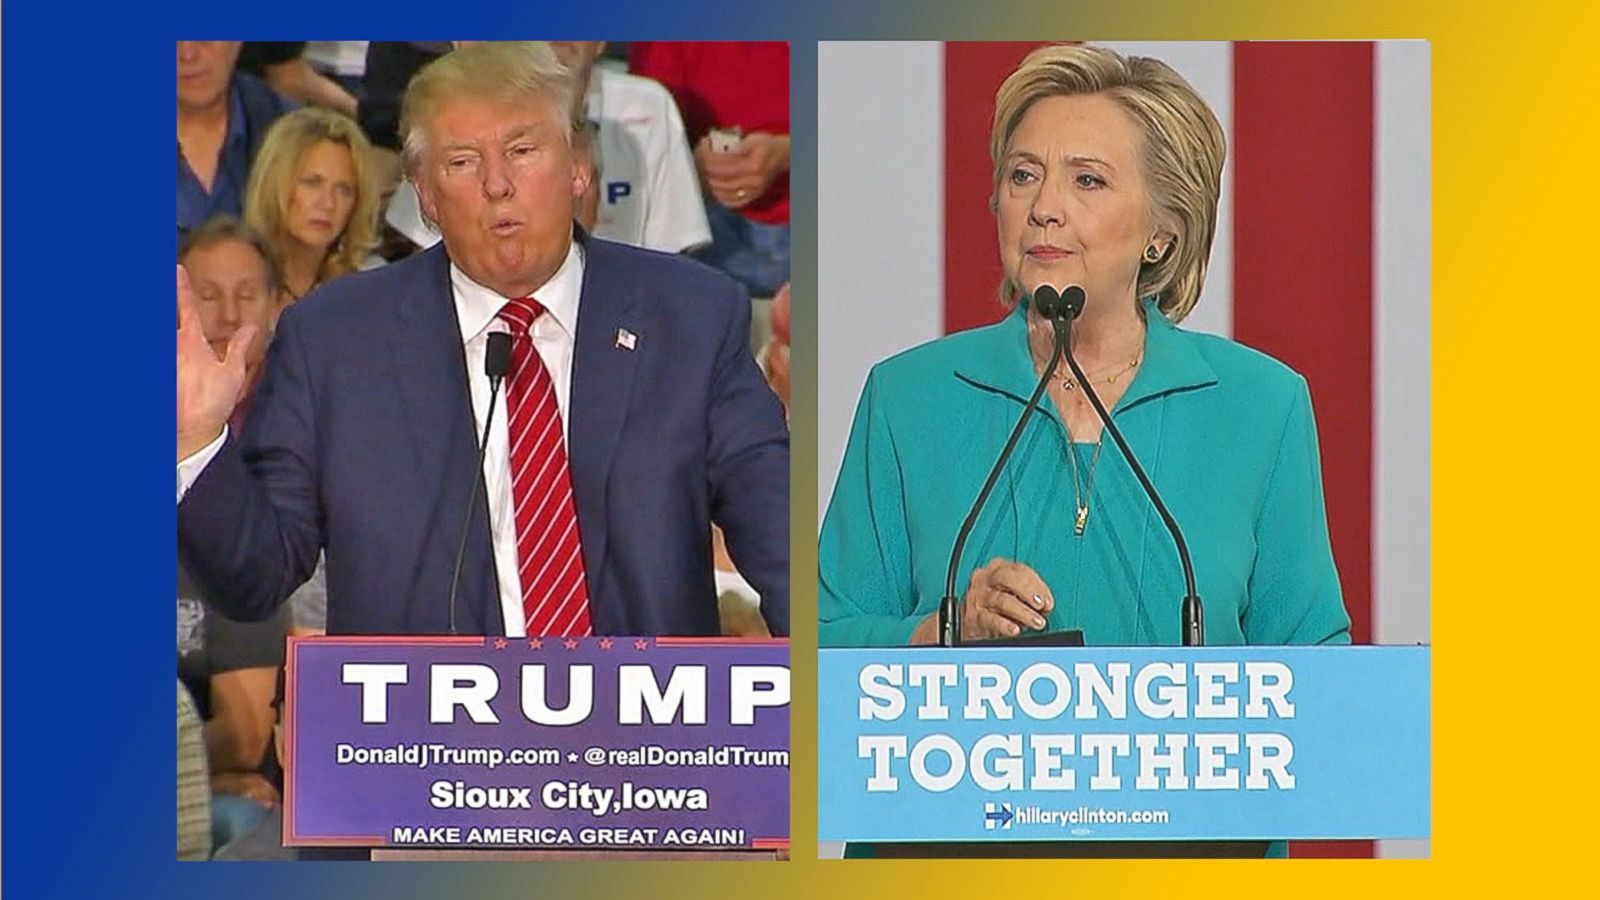 VIDEO: Donald Trump, Hillary Clinton Fight to Win Battleground States